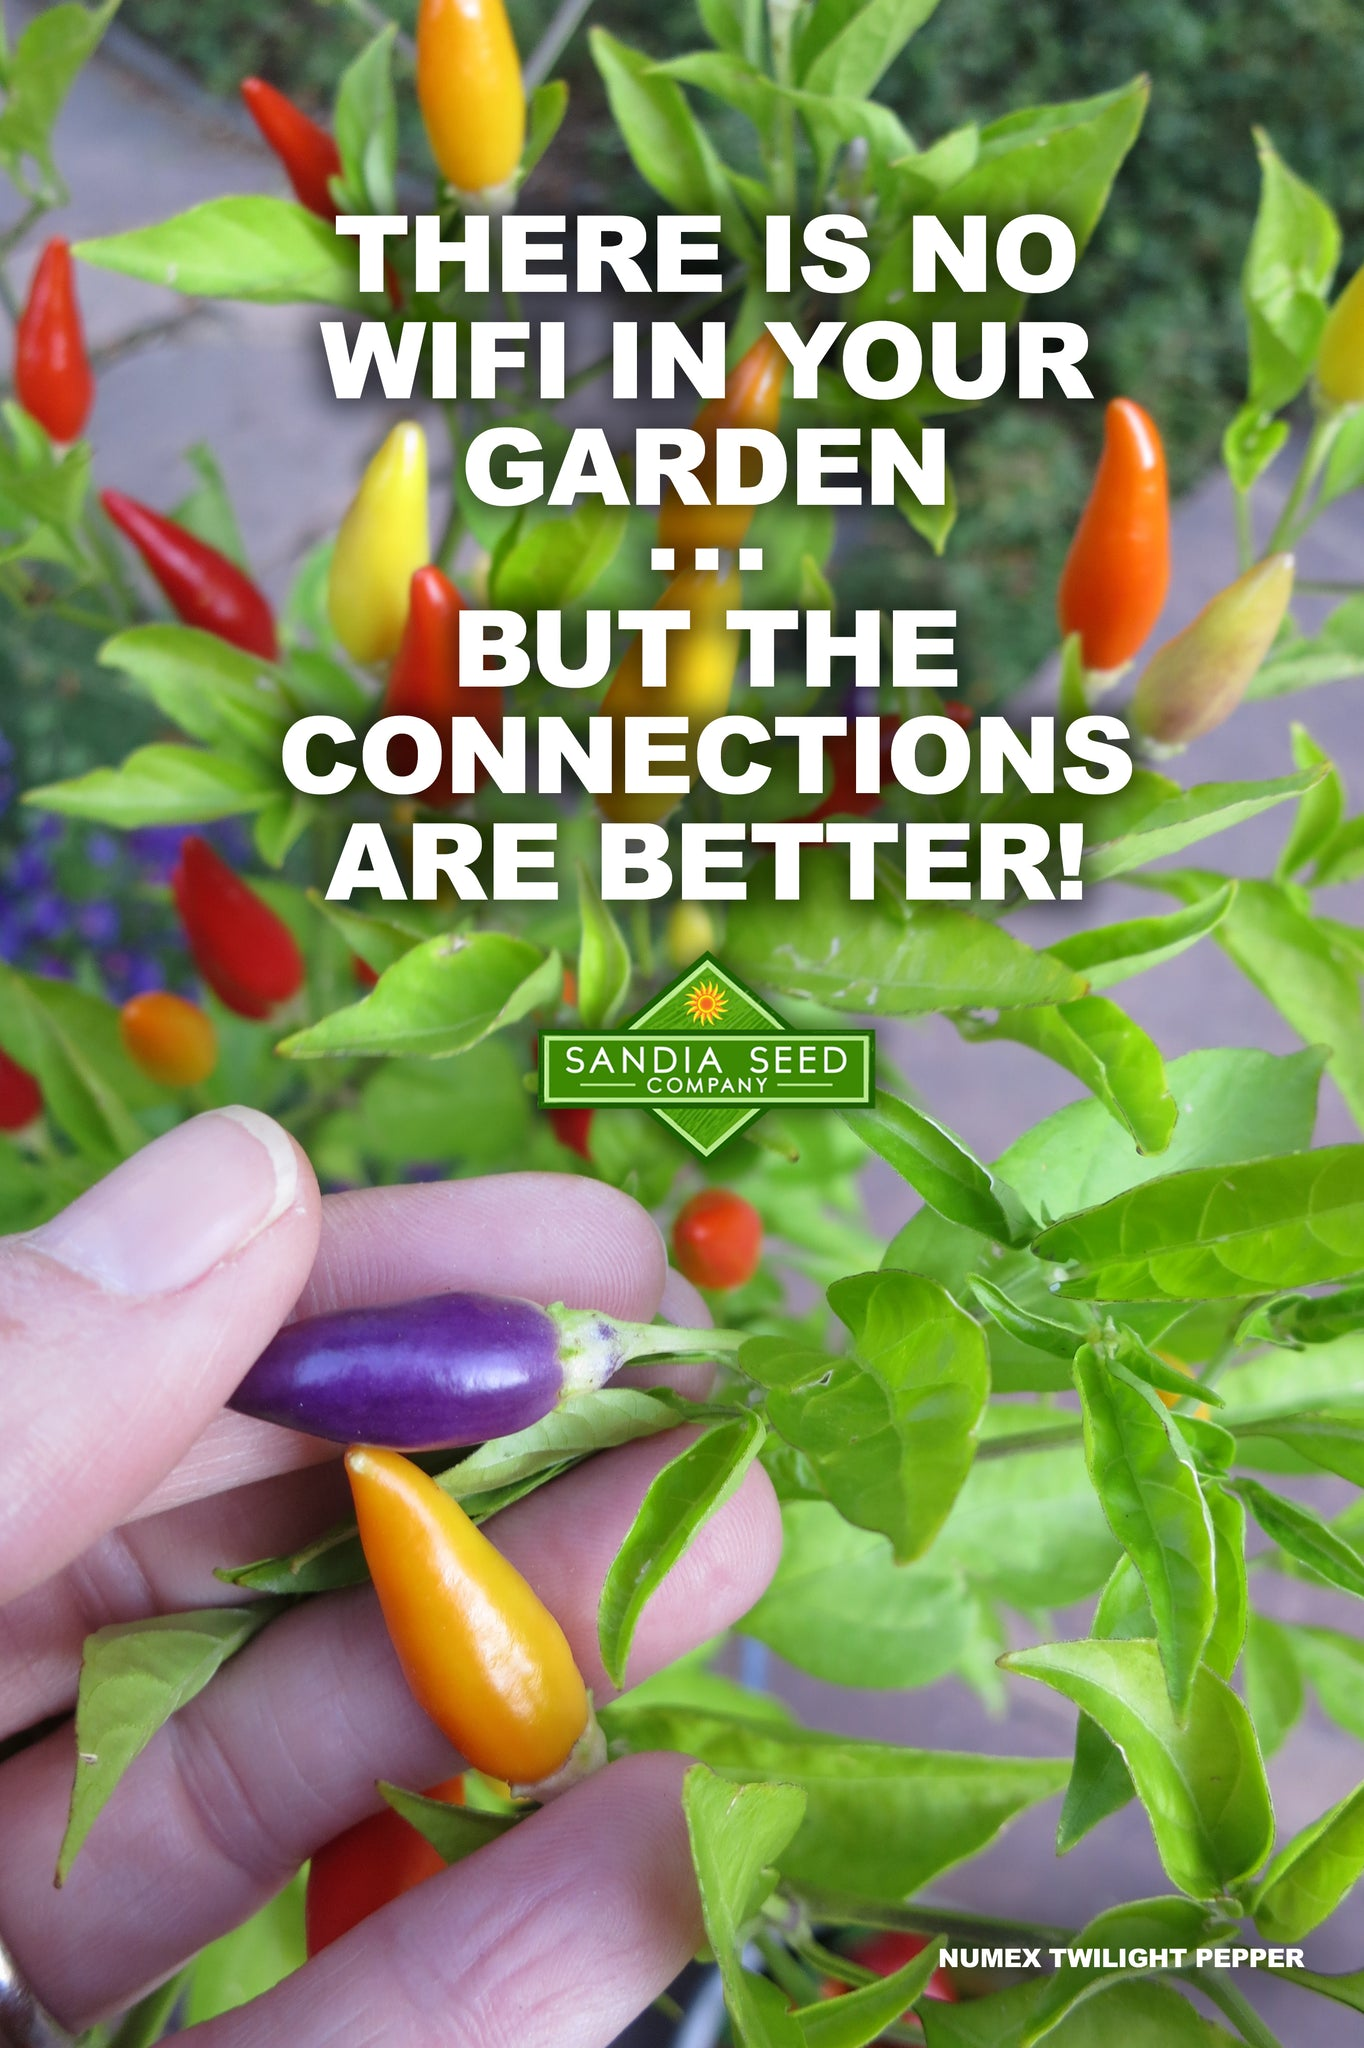 Garden Meme: There is no WiFi in your GARDEN ... but the connections are better!